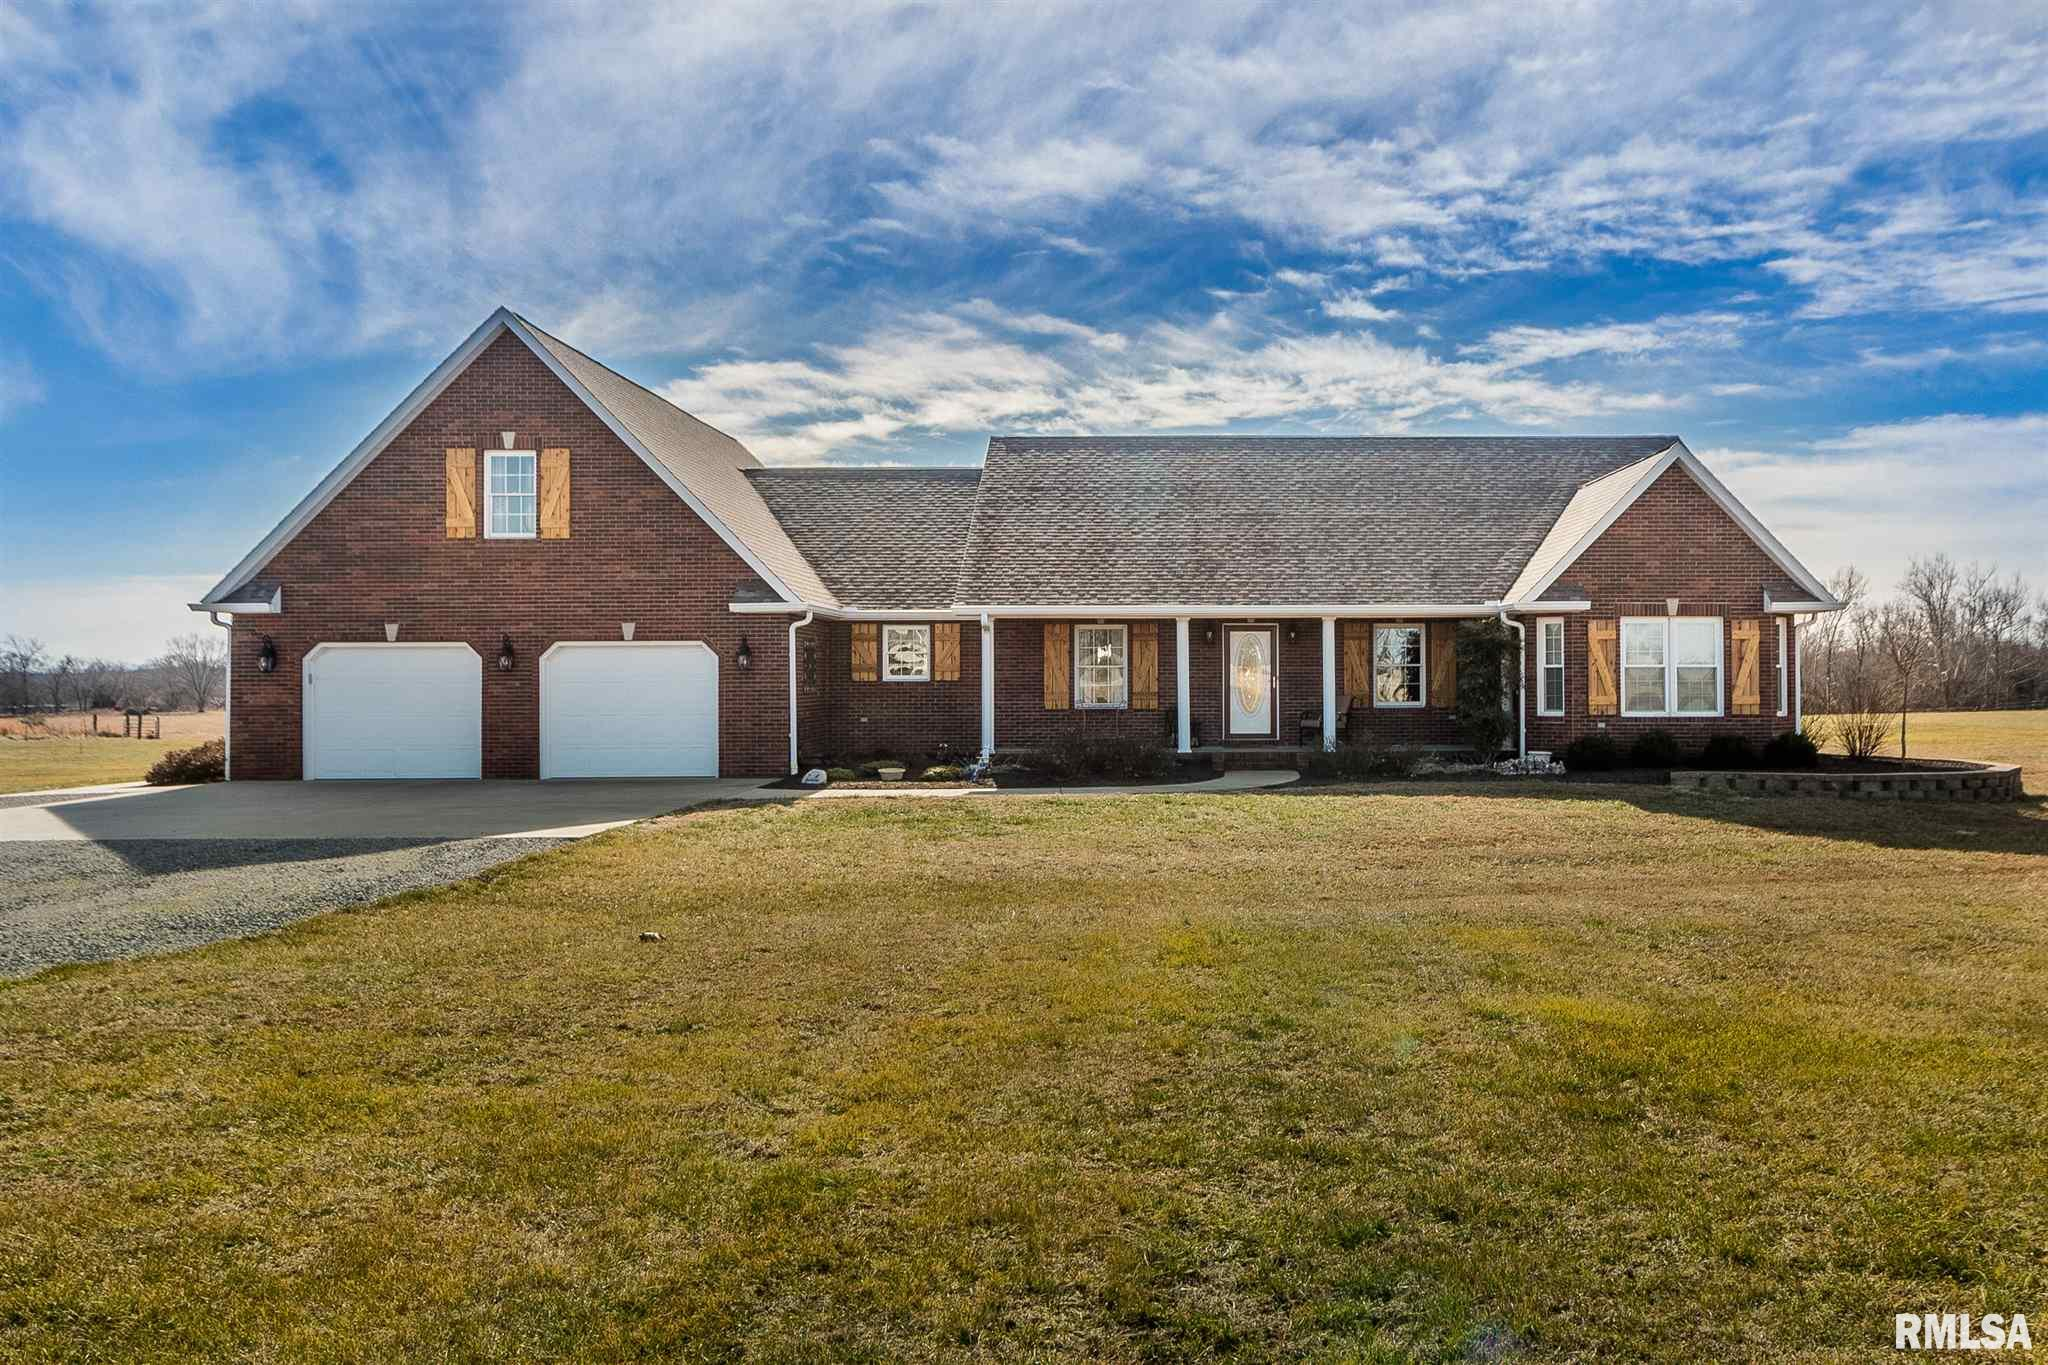 15043 Sulphur Springs Property Photo - Creal Springs, IL real estate listing